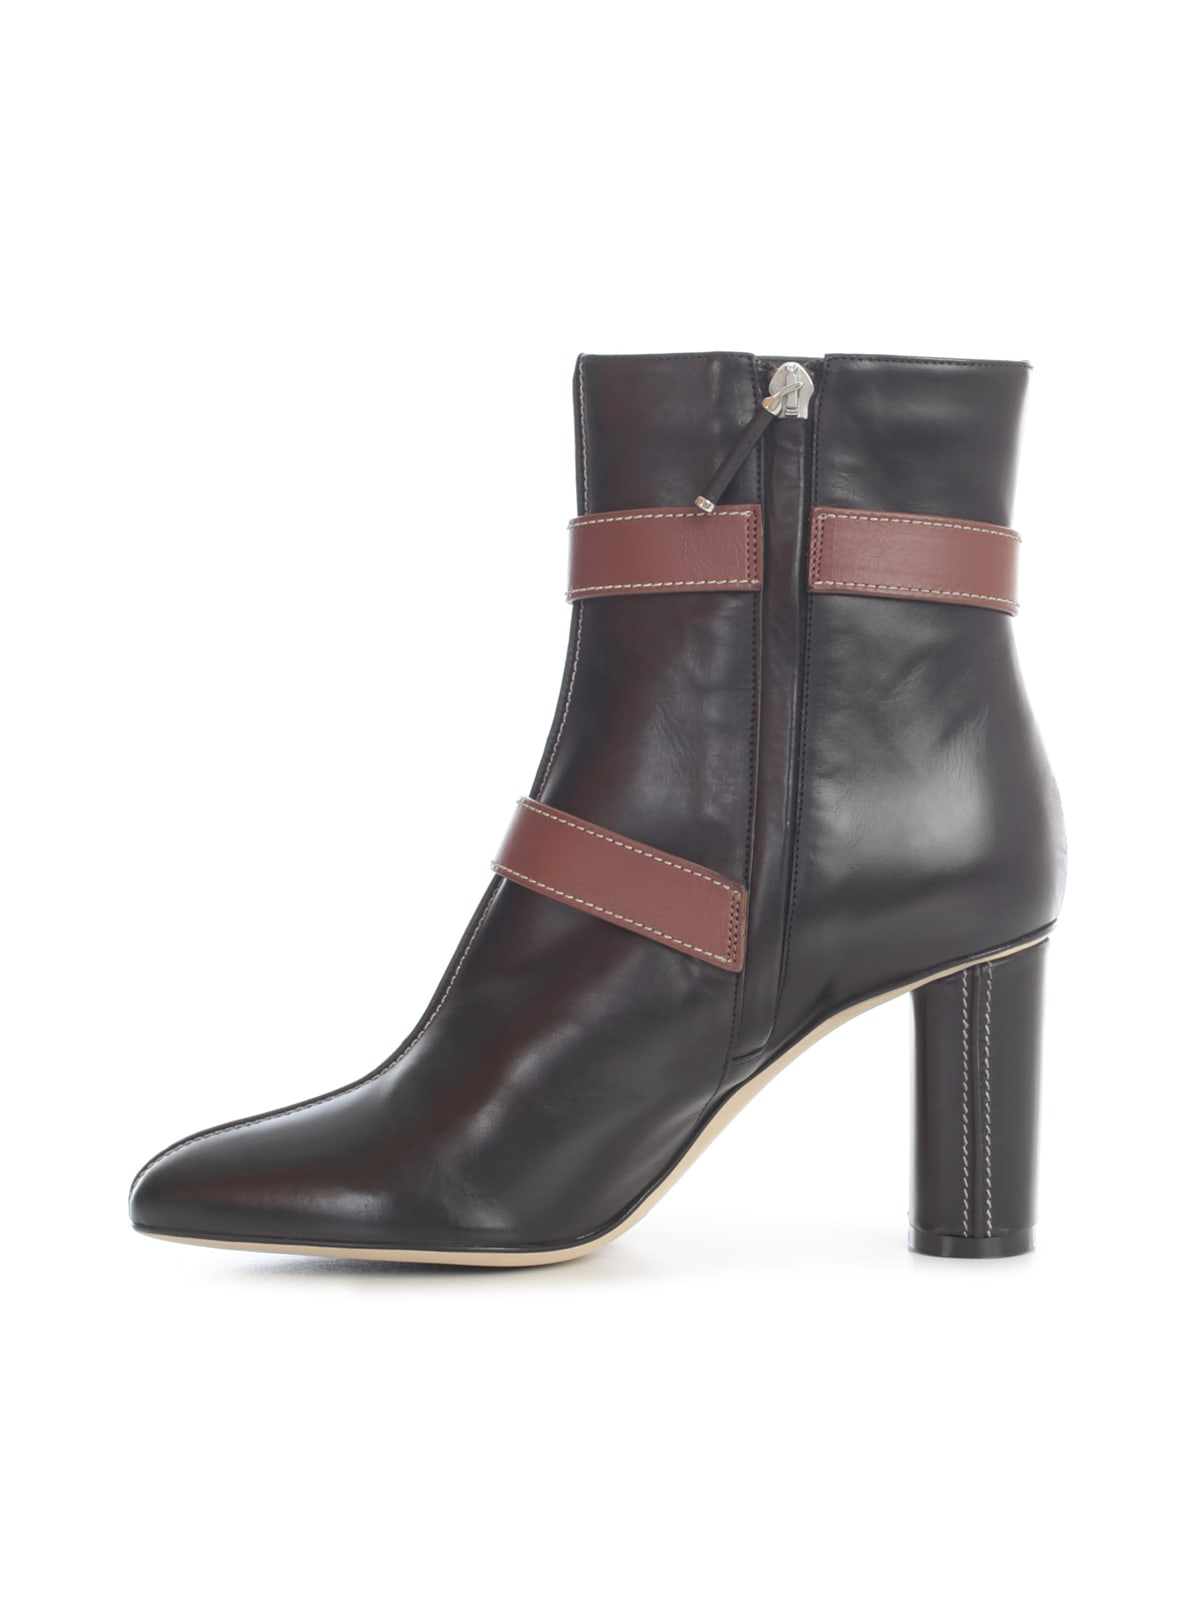 Buy Newest Rodo Ankle Boots Double Buckle - Great Deals